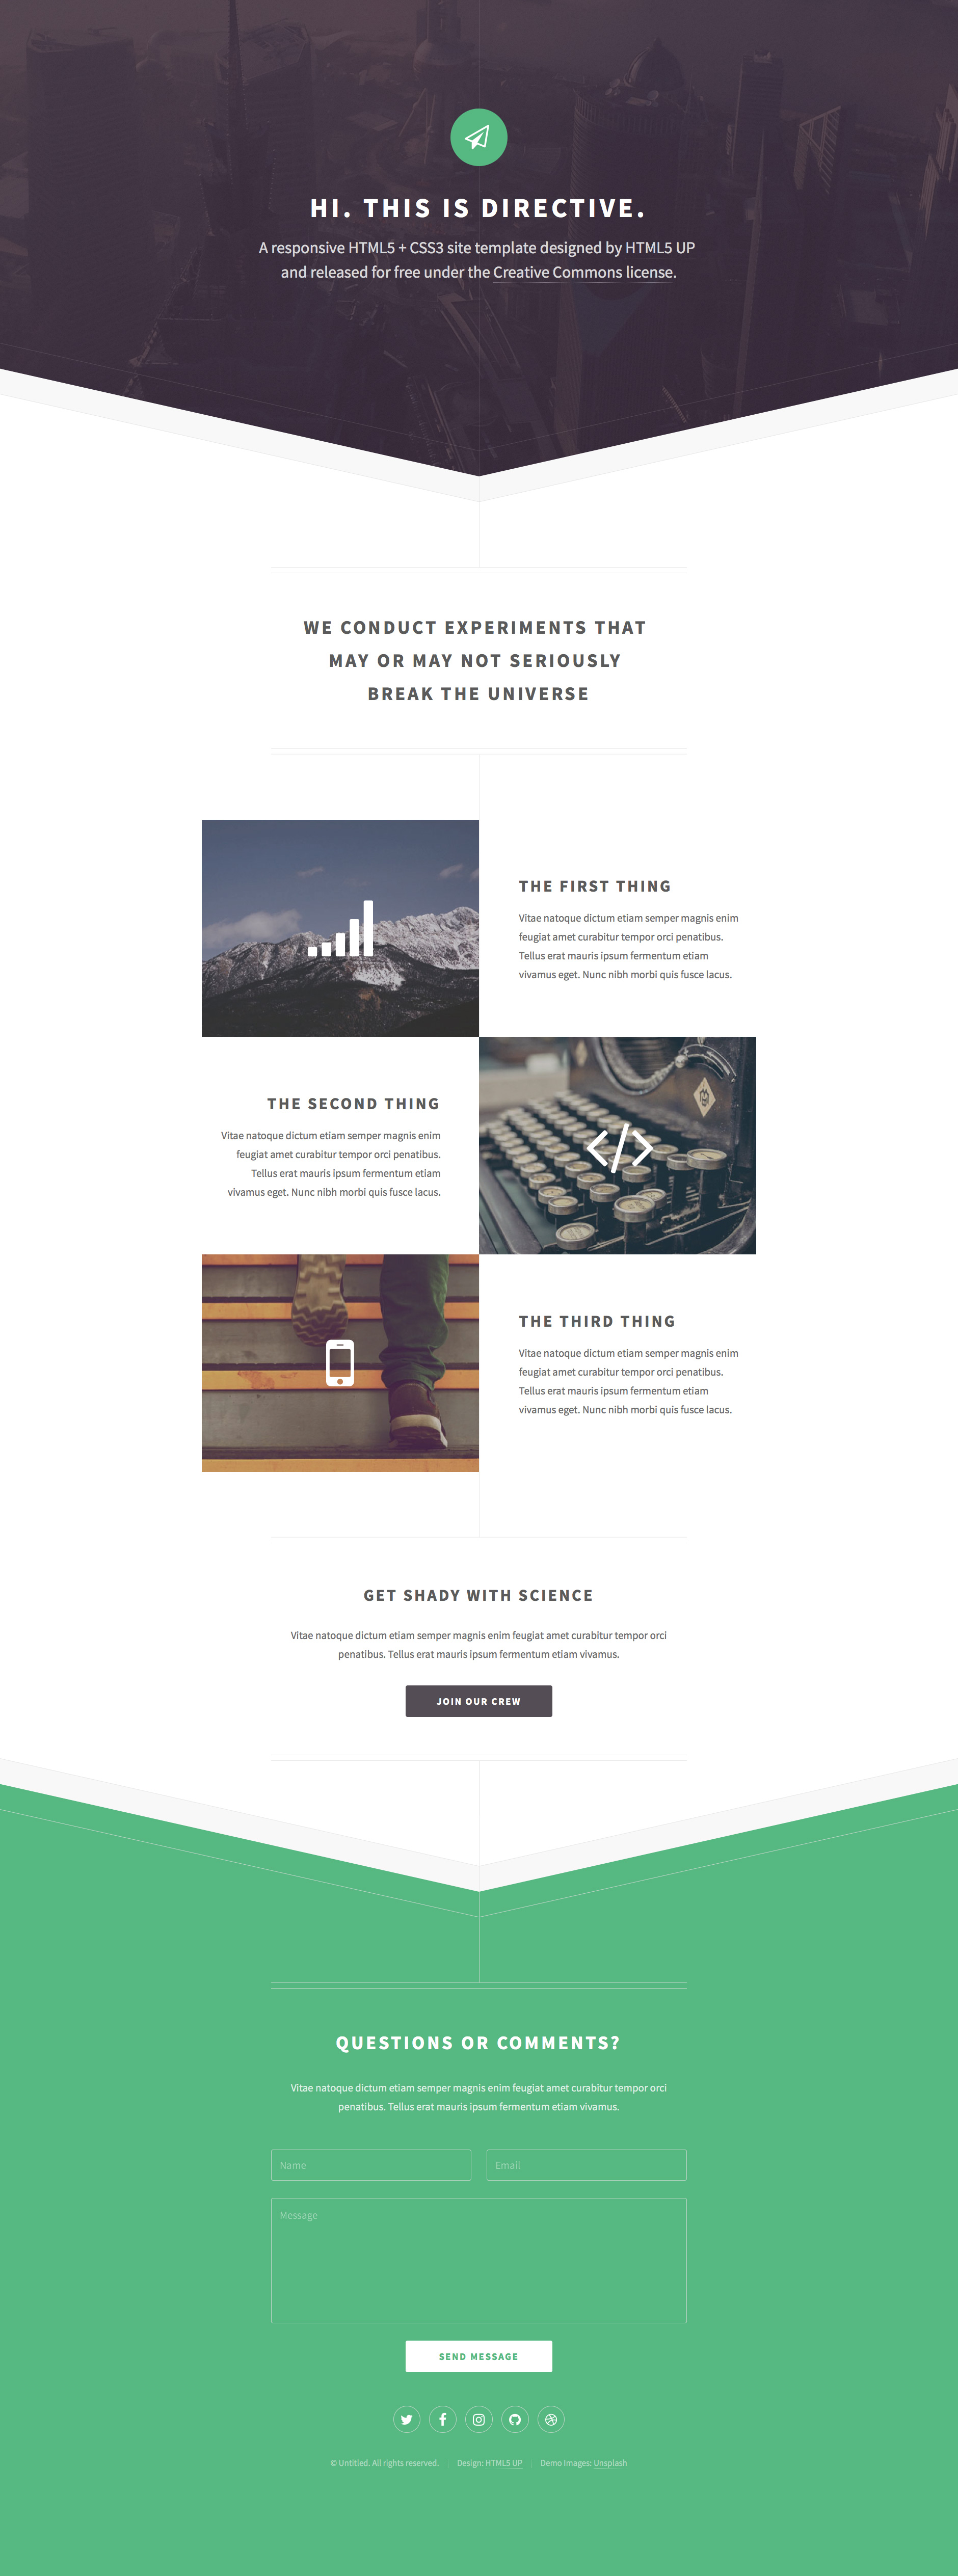 Directive is a free responsive HTML5 Bootstrap landing page website template. It is the ideal landing template for your personal website. It has retina ready clean and minimal style. Directive built on custom HTML5 framework.